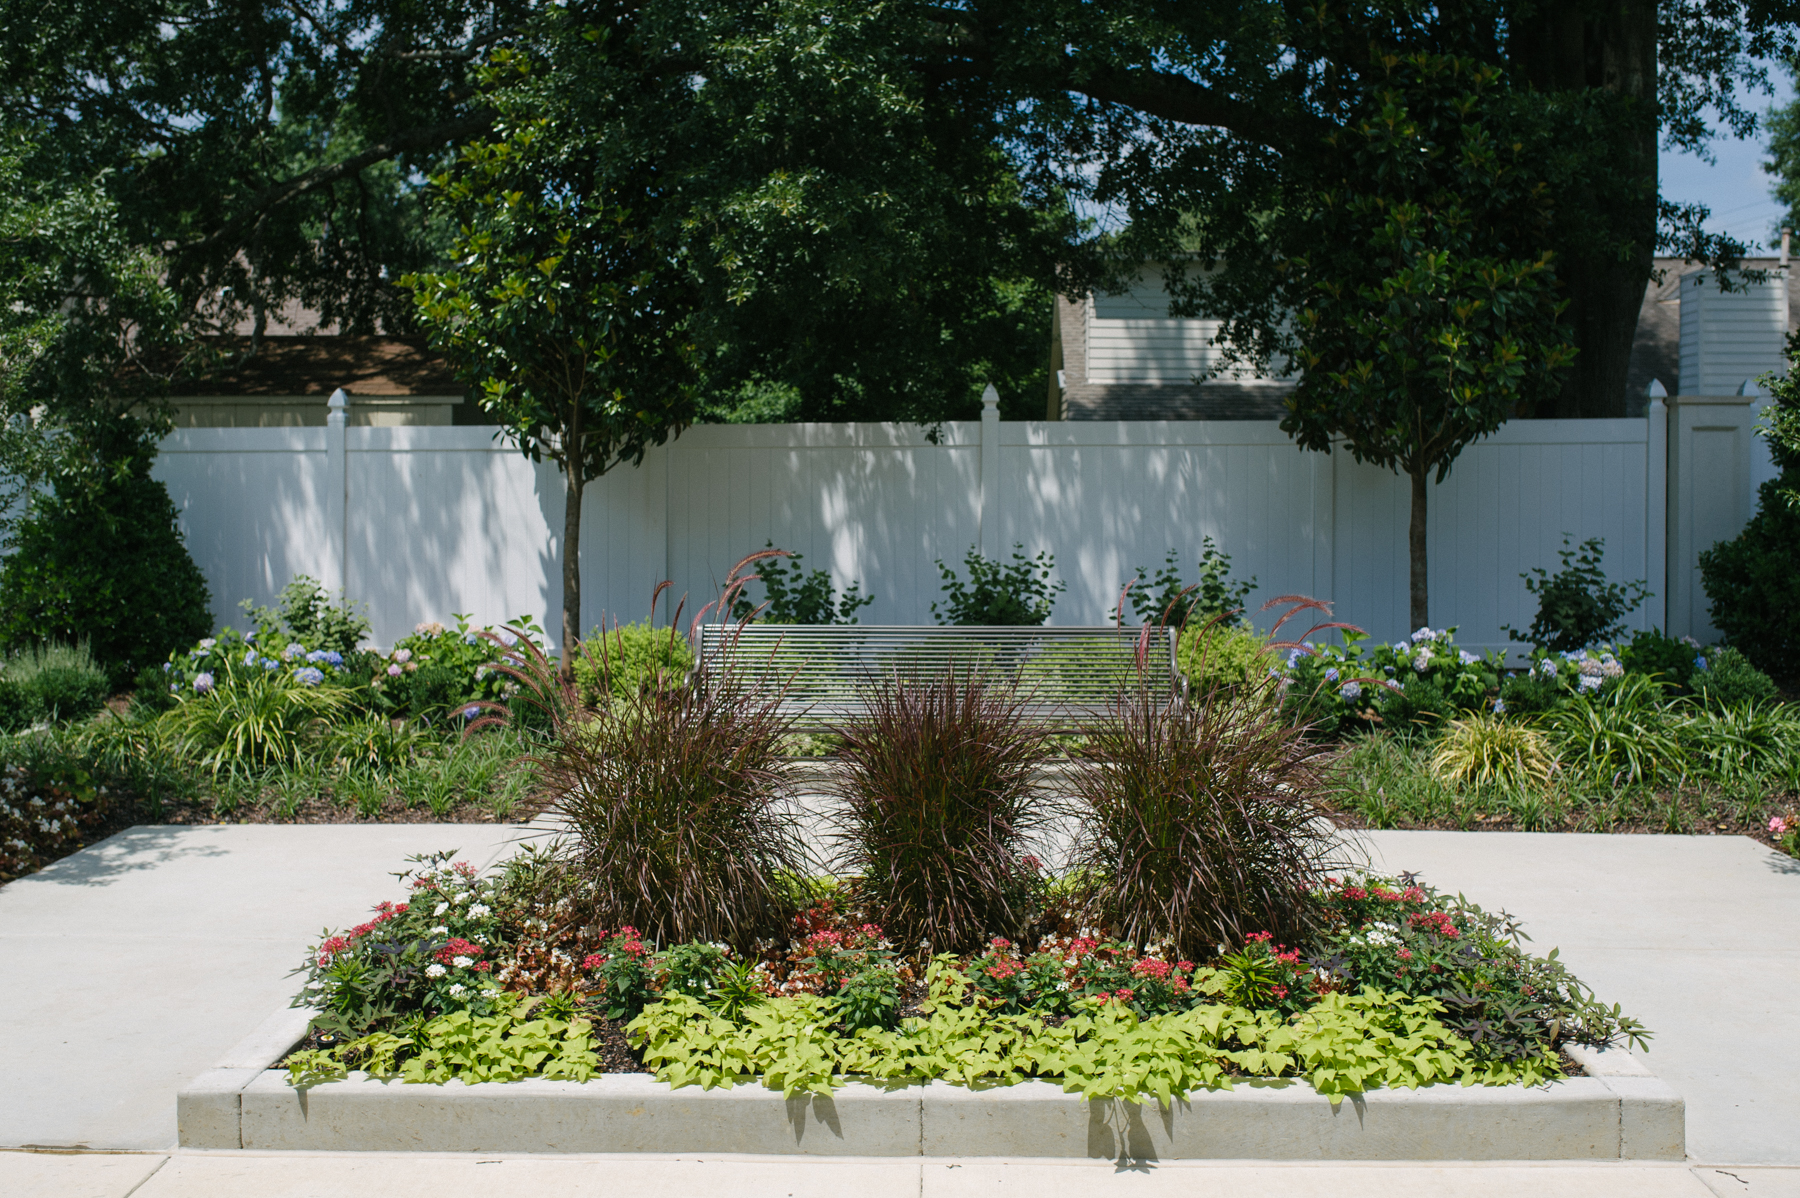 commercial-landscaping-planting-trees-shrubs-fence-bench